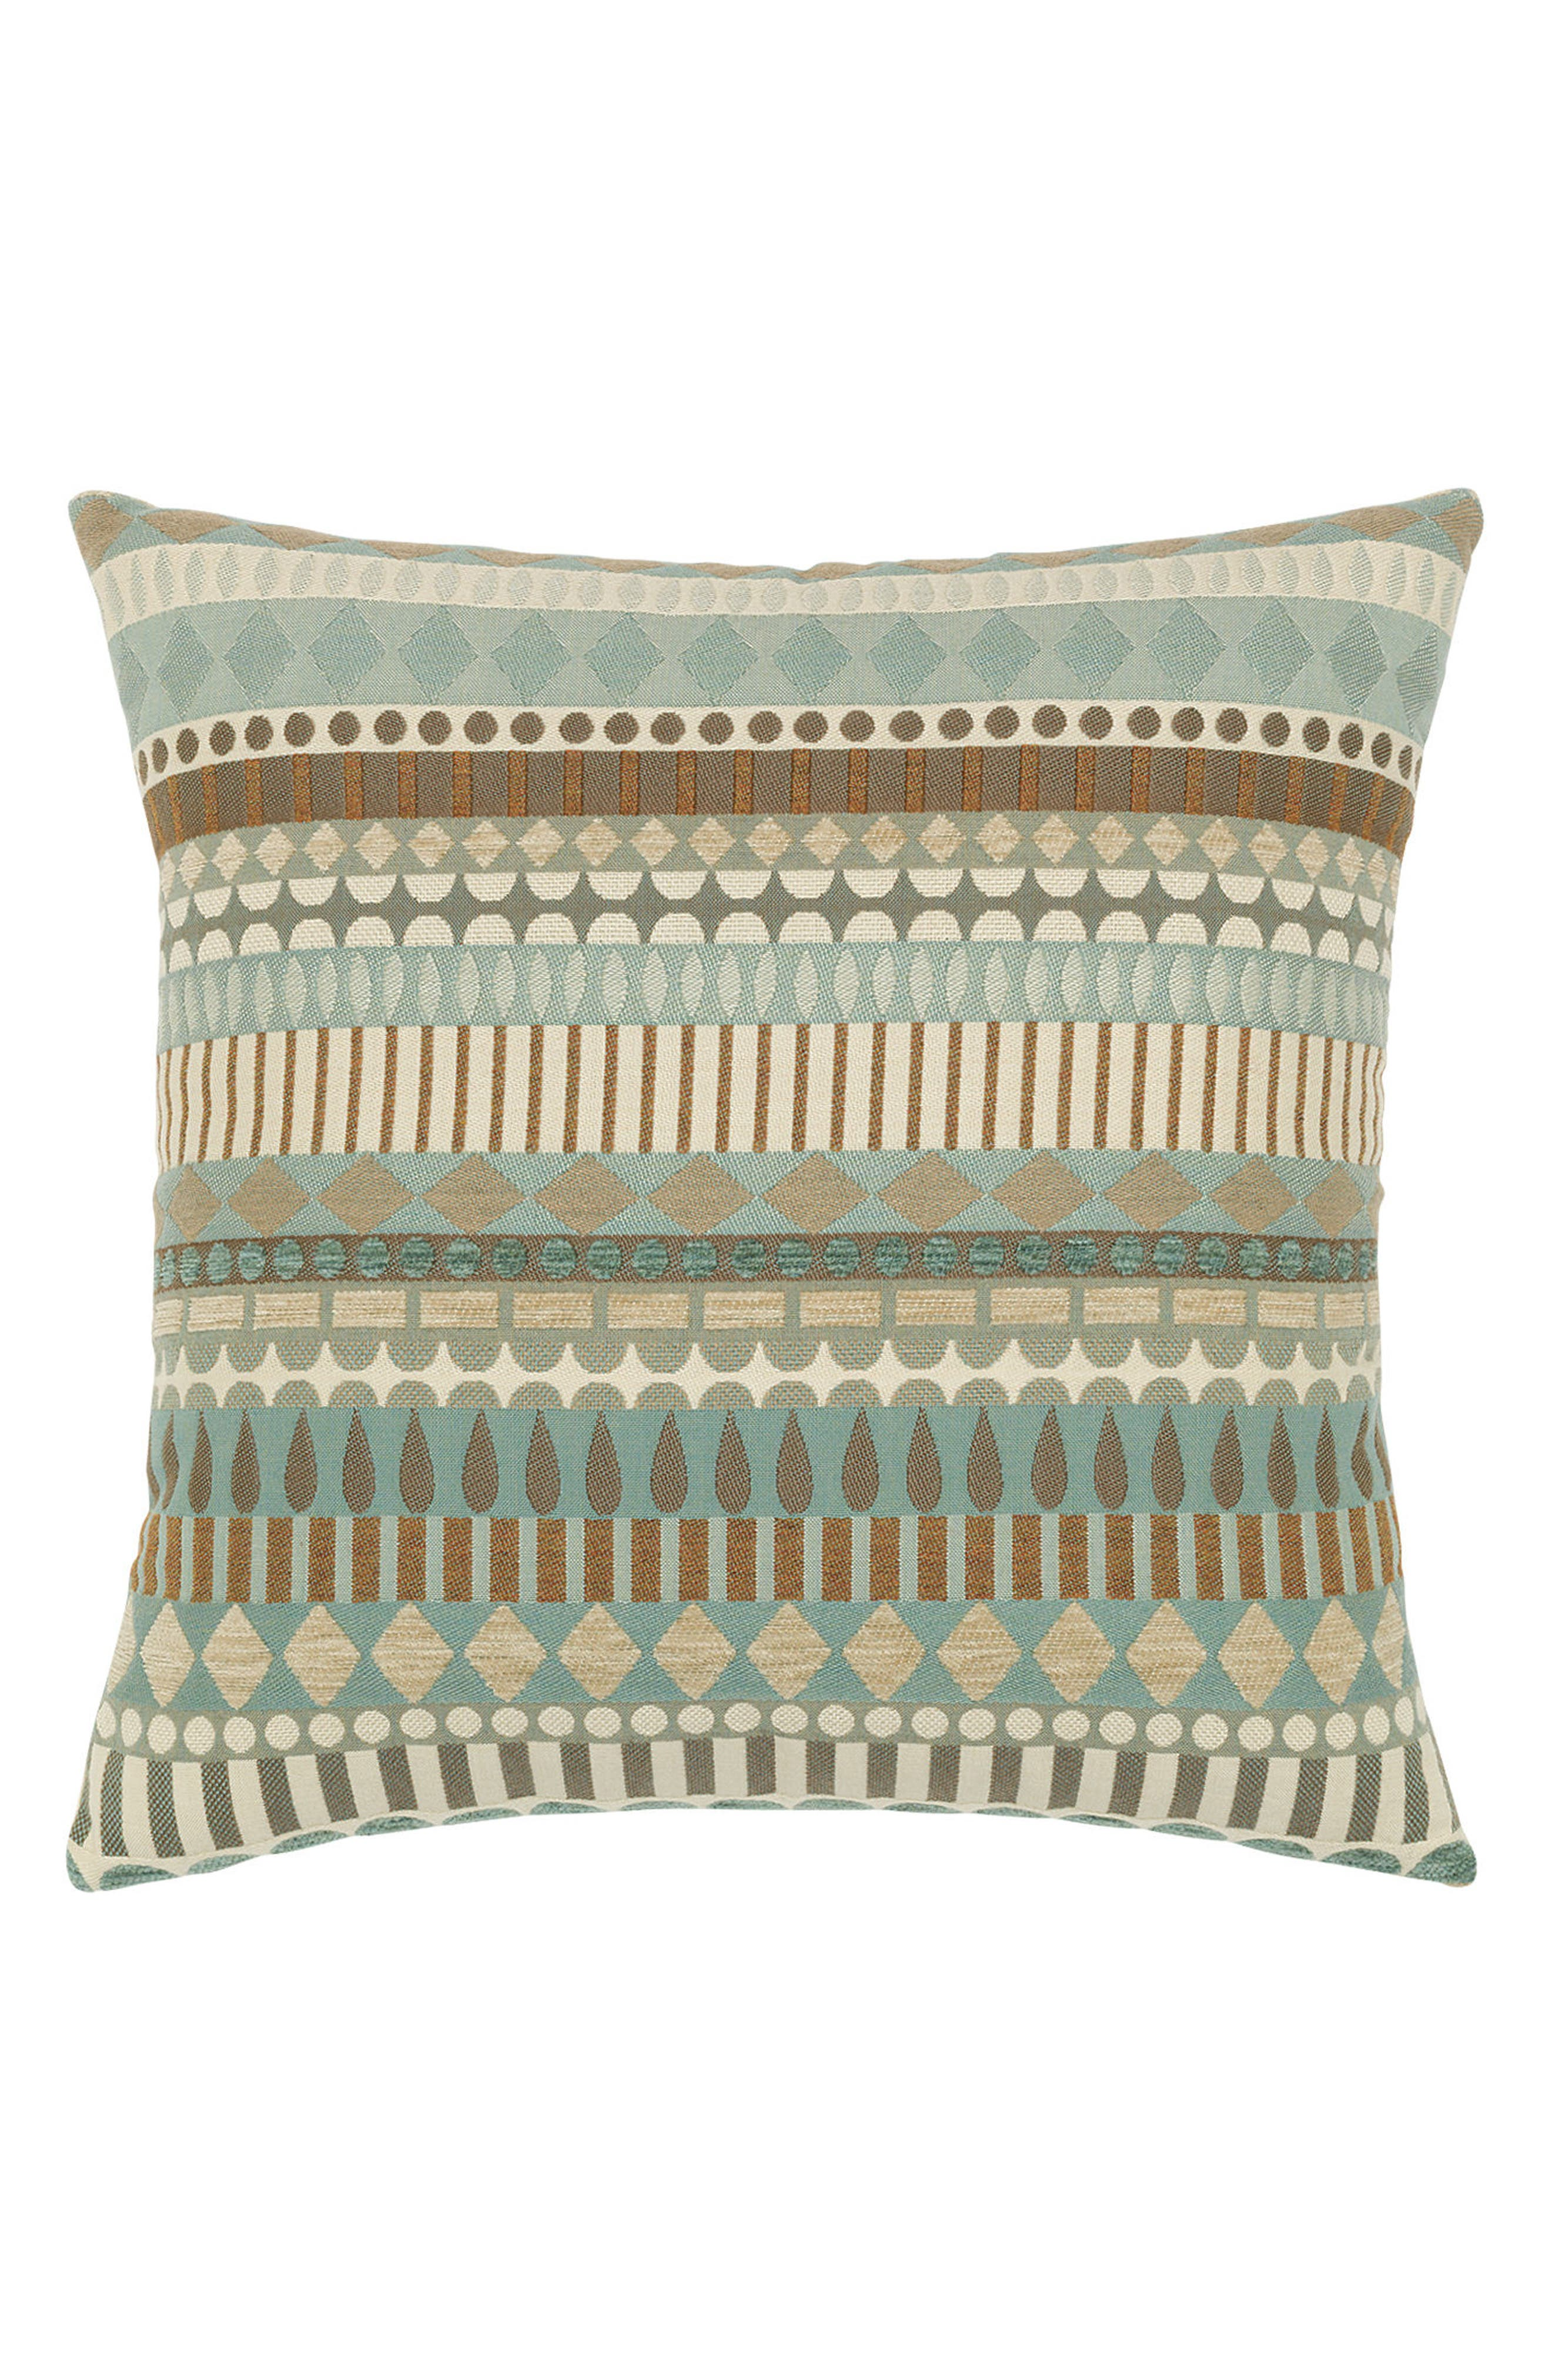 Deco Indoor/Outdoor Accent Pillow,                             Main thumbnail 1, color,                             Blue/ Brown